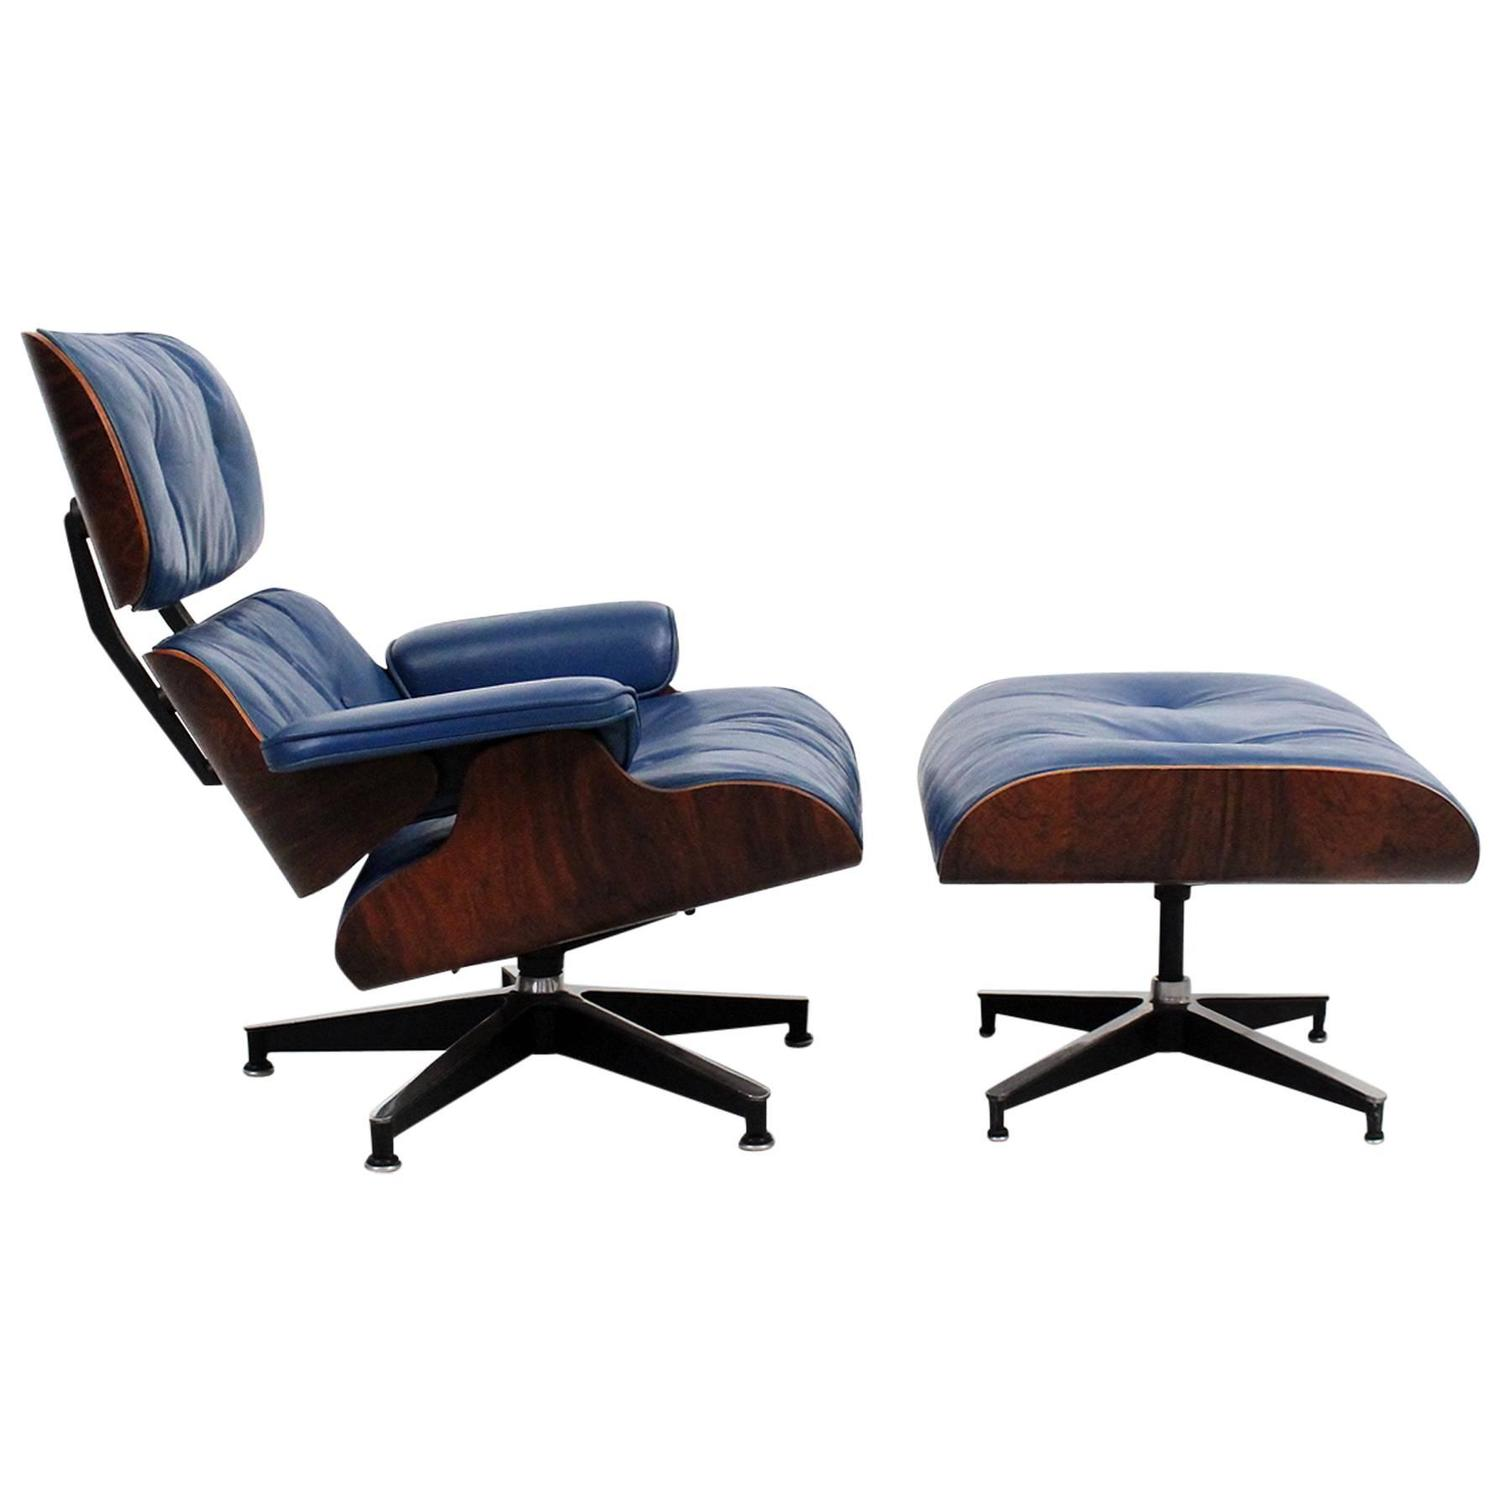 Blue Leather Eames Lounge Chair And Ottoman For Sale At 1stdibs